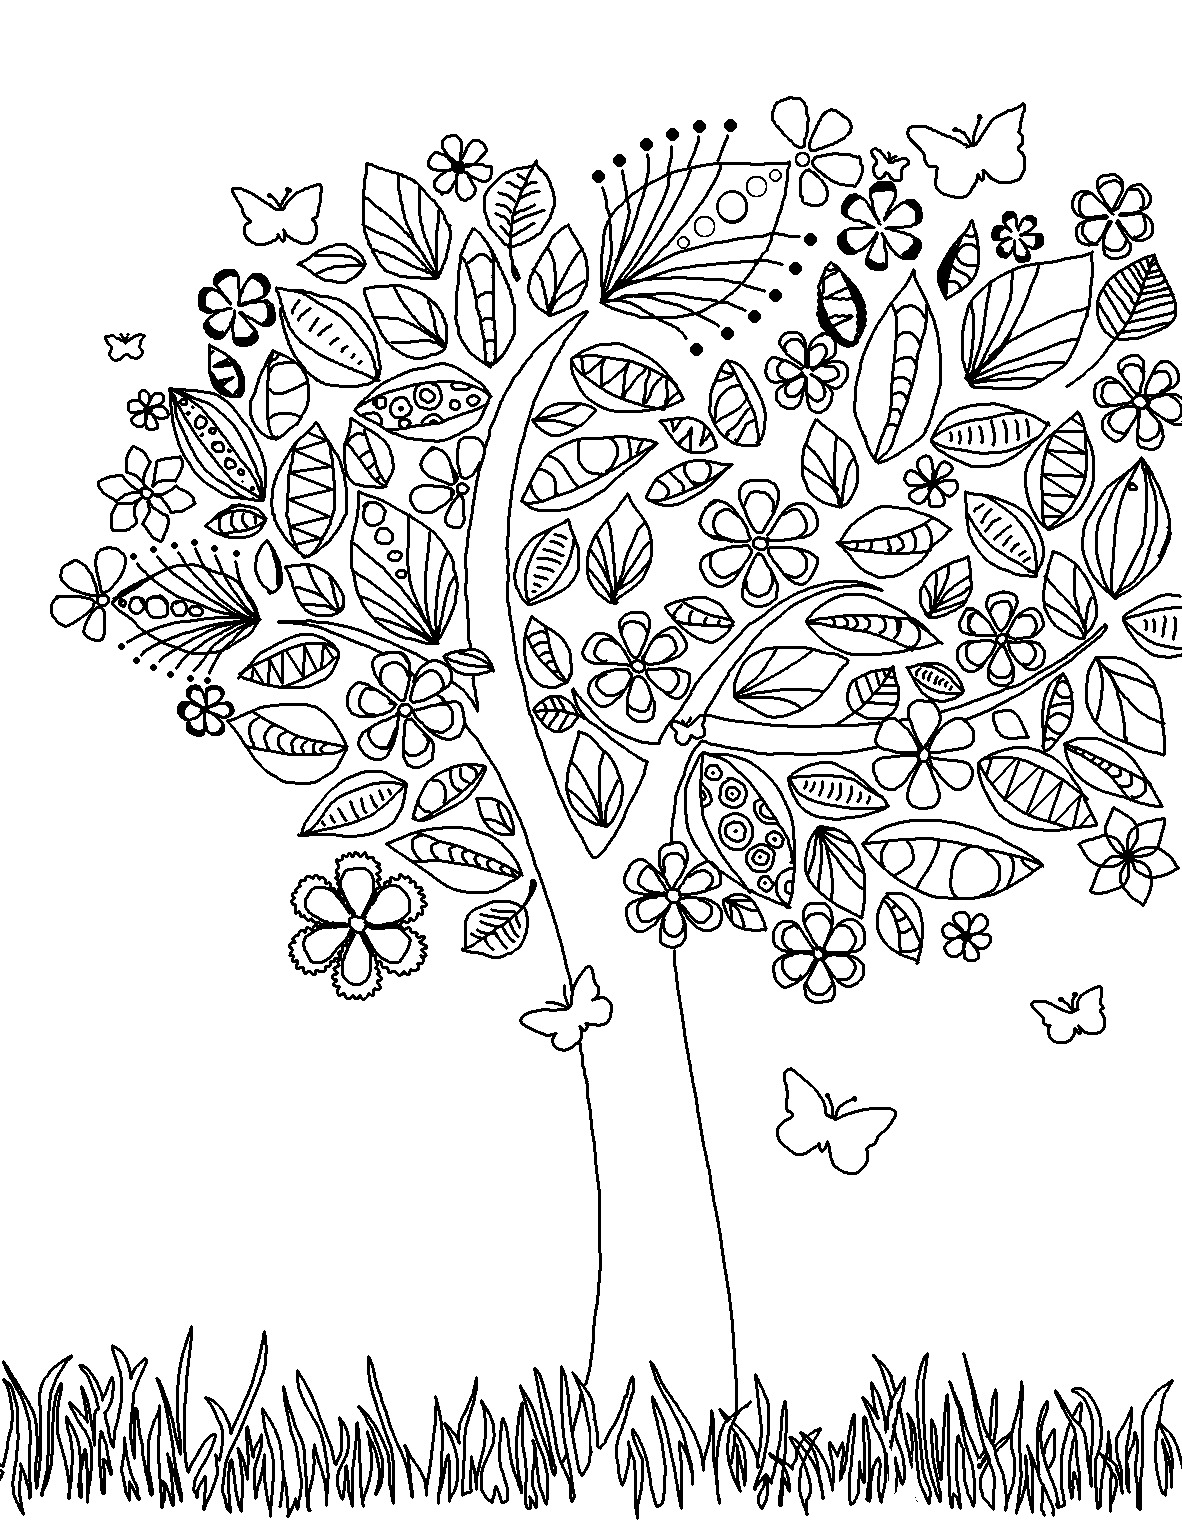 design coloring pages for adults - Free Printable Coloring Page Bookmarks Dawn Nicole